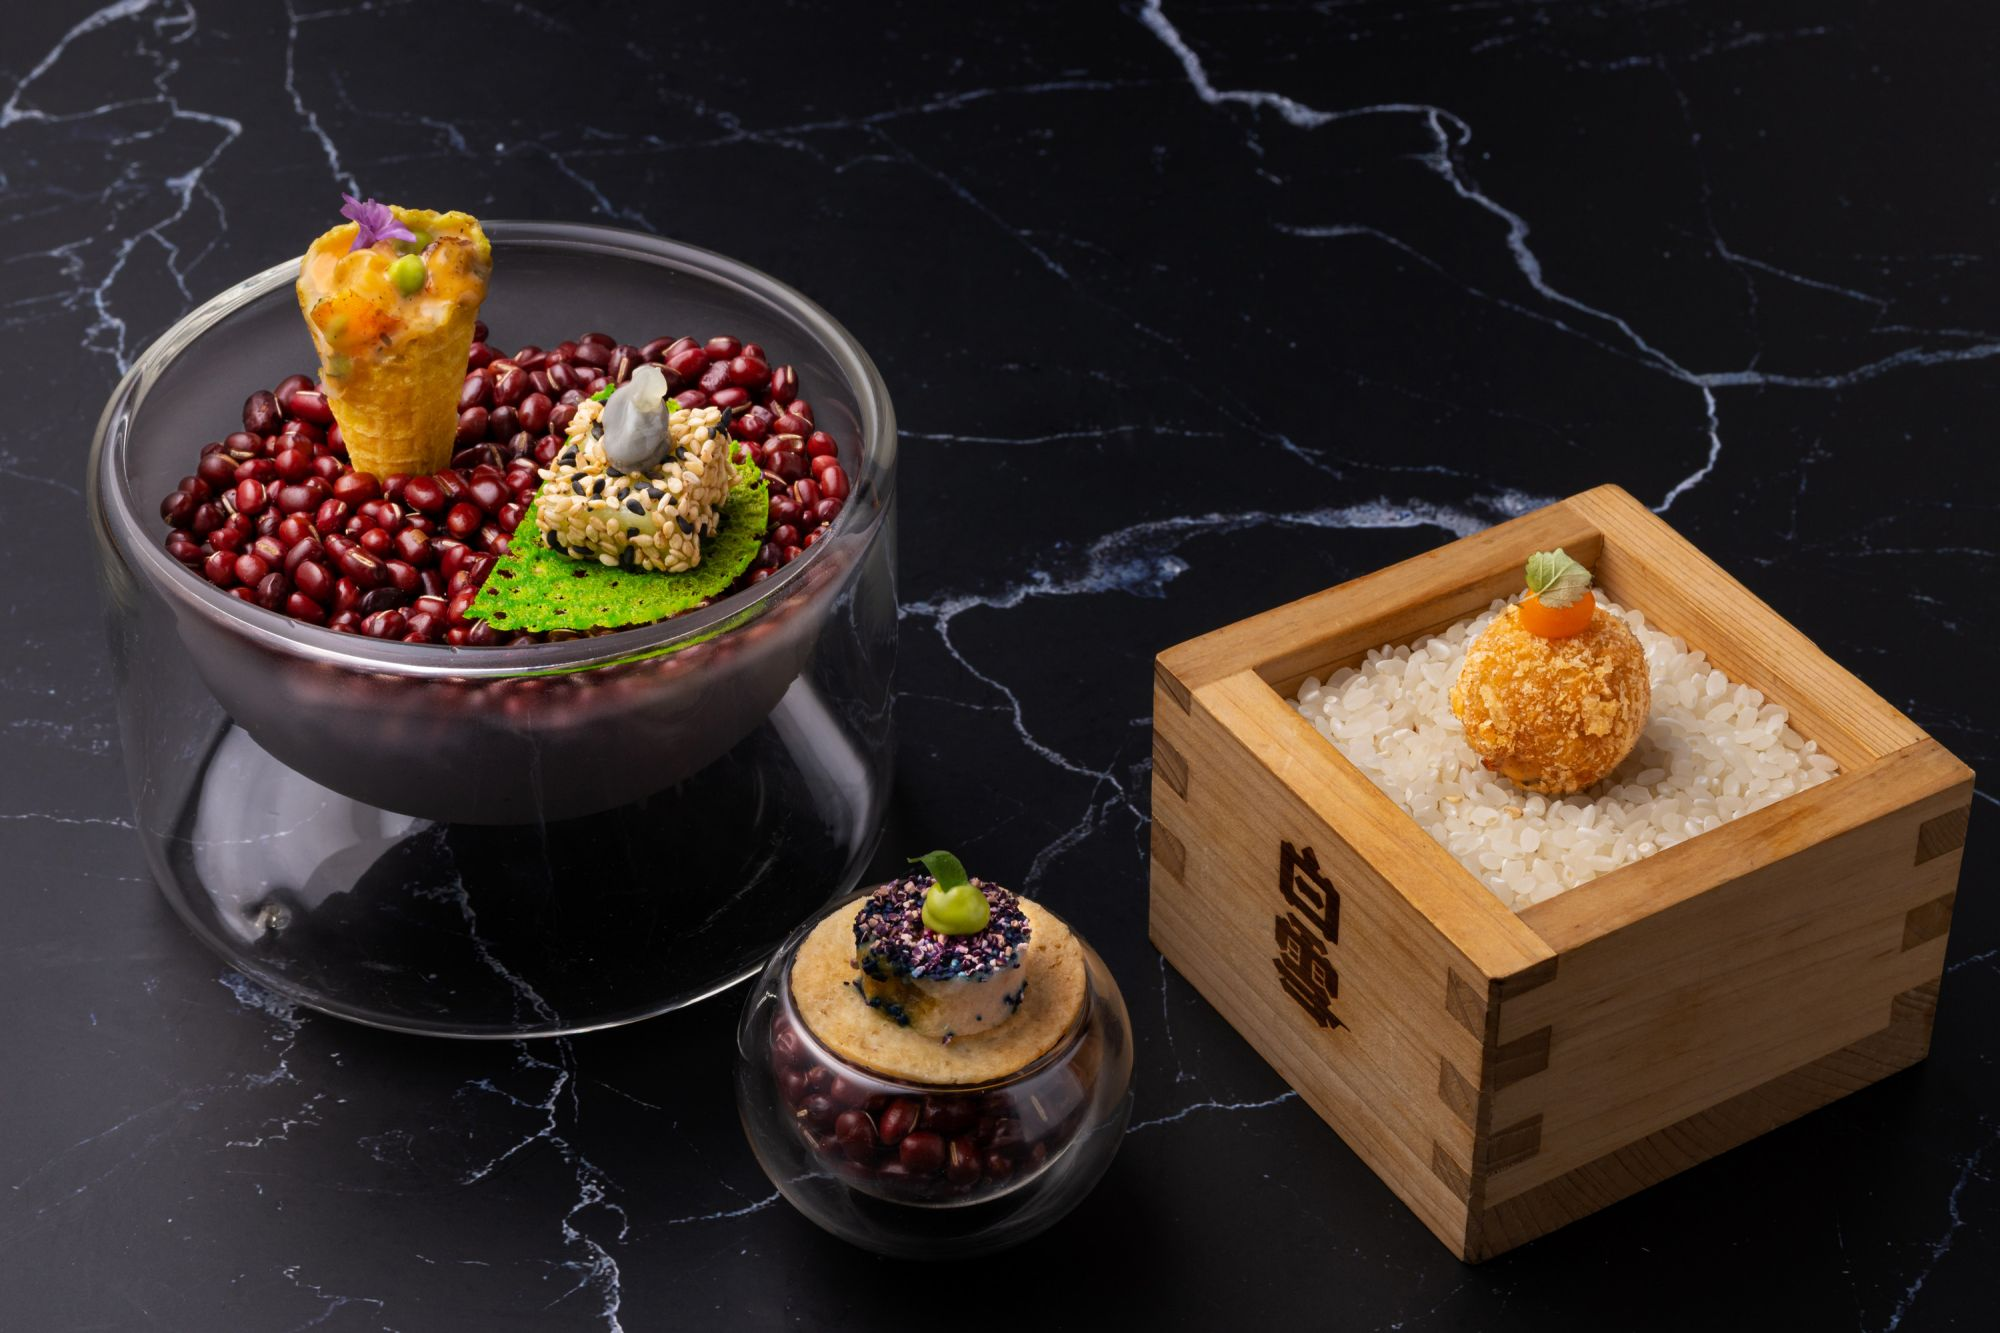 Elements' New 7-Course Menu Blends The Best Of Two Worlds